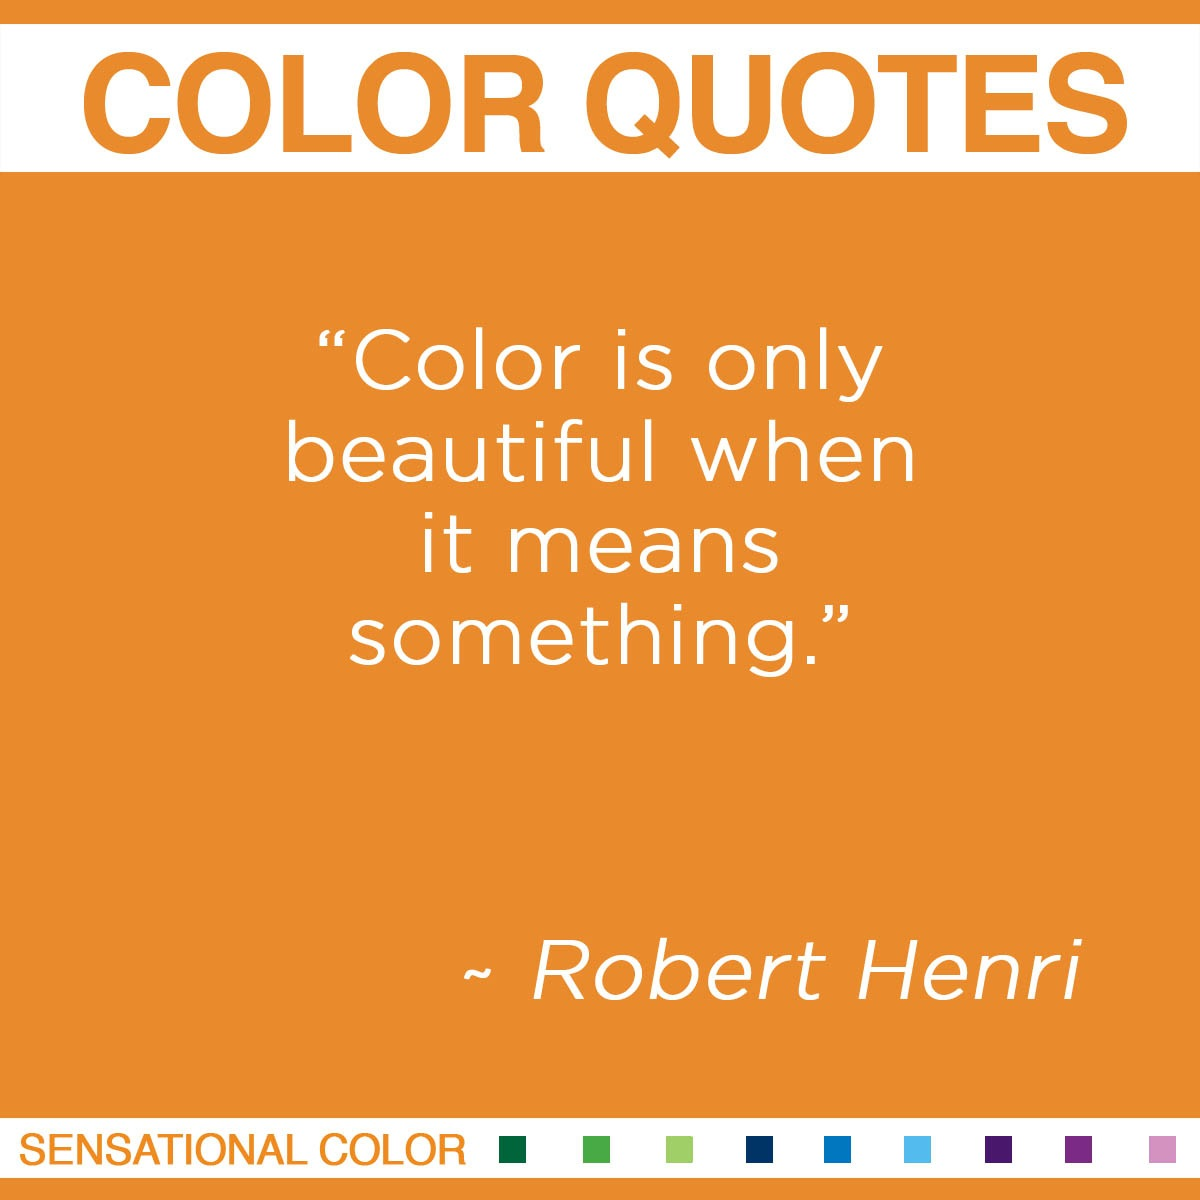 """Color is only beautiful when it means something."" - Robert Henri"